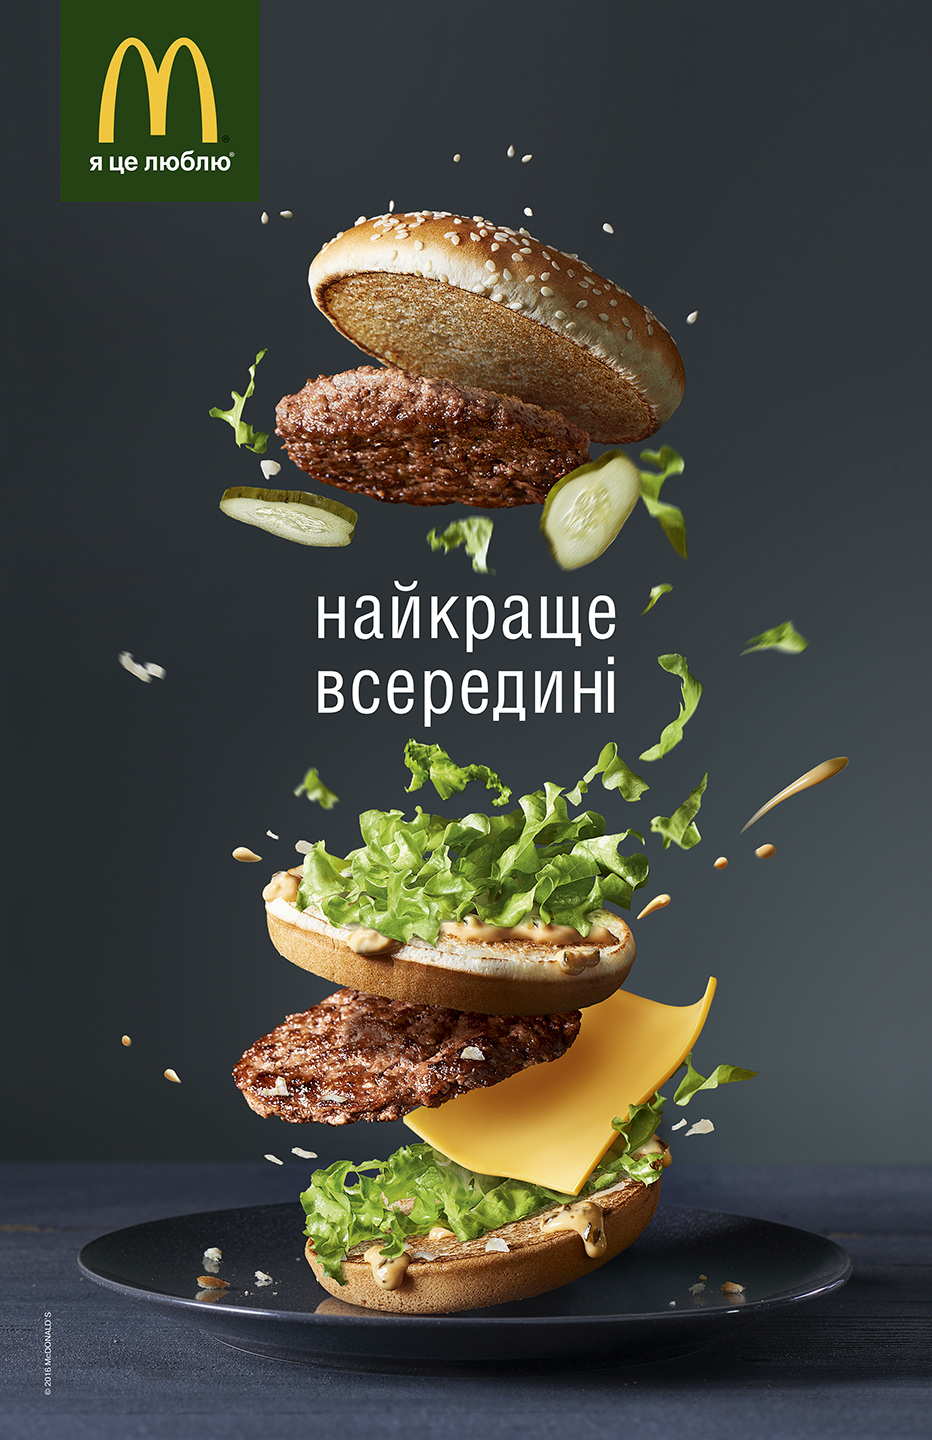 Kiev flying burger web 2